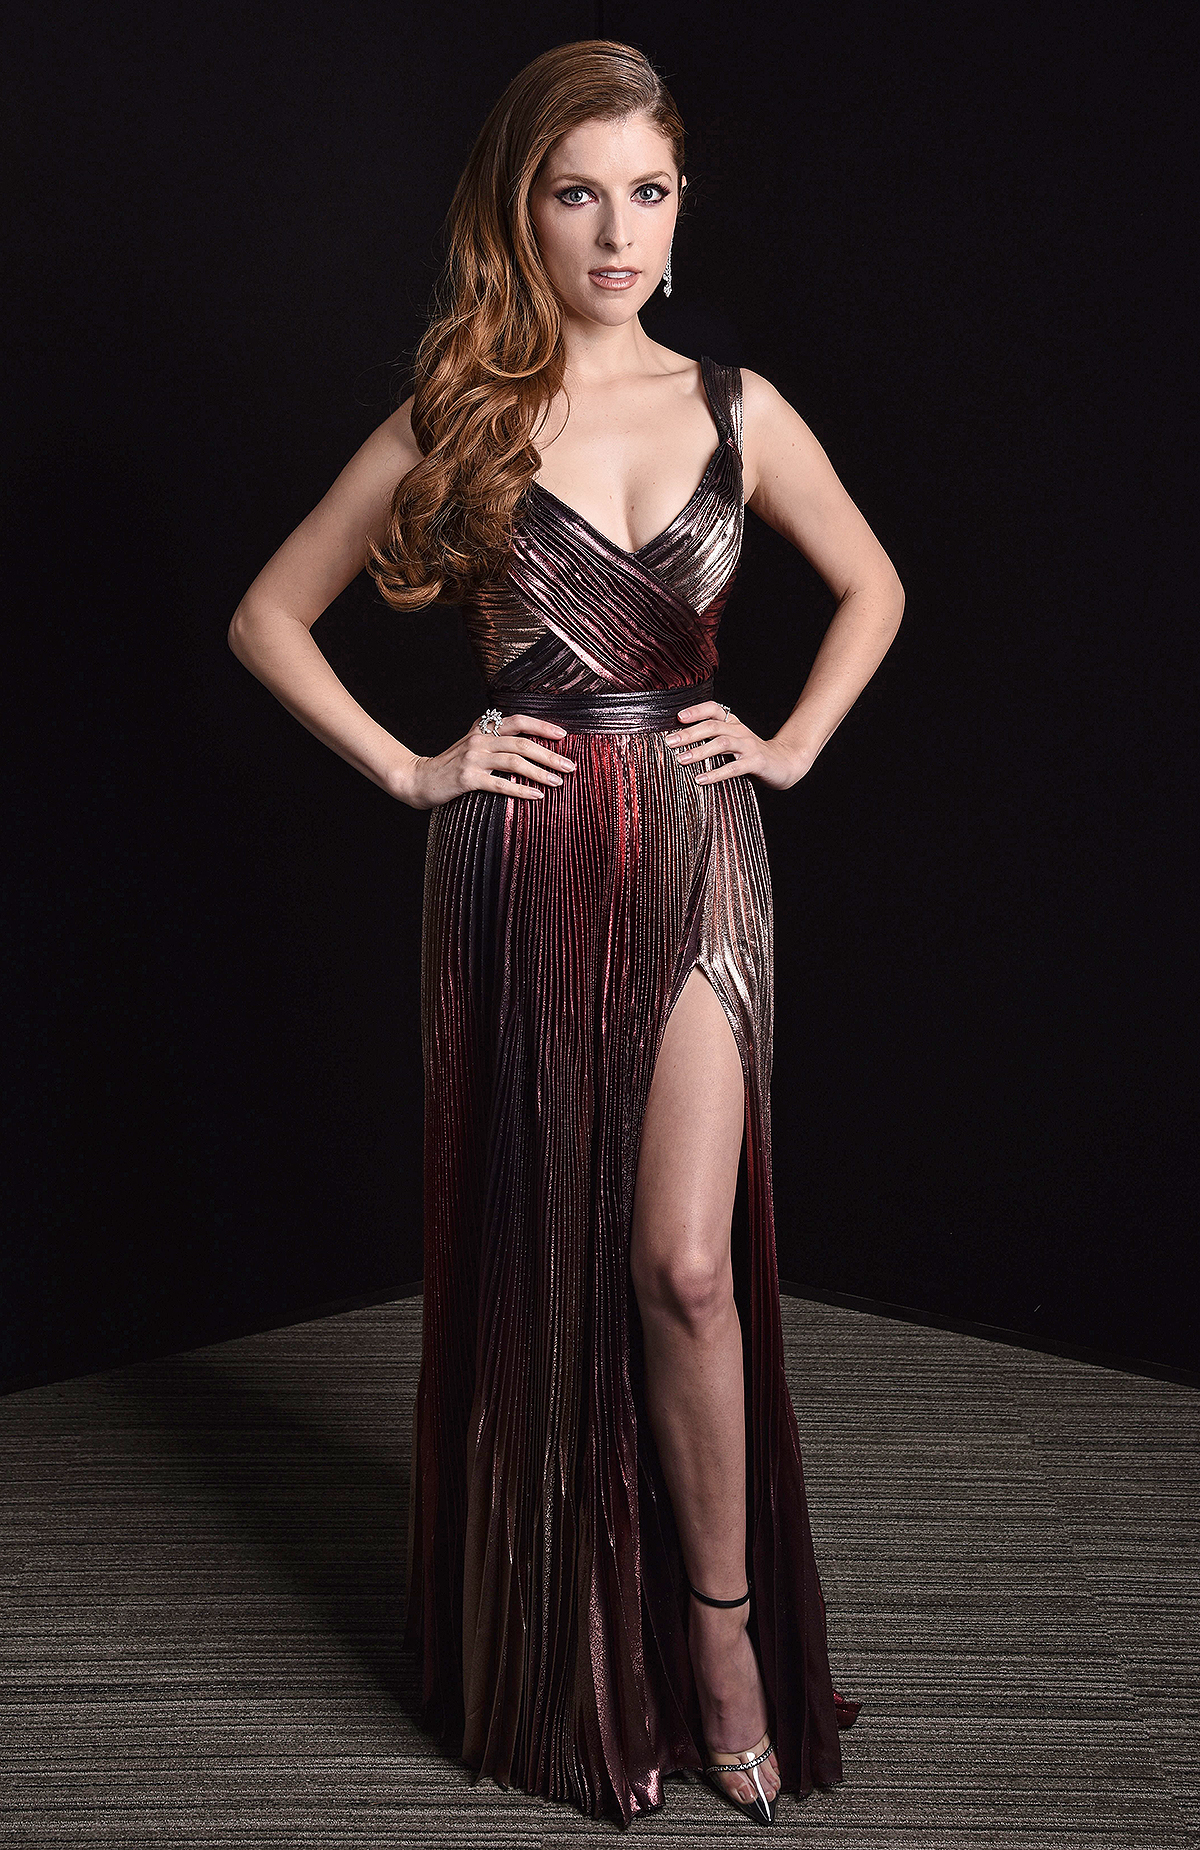 Anna Kendrick Exclusive - 74th British Academy Film Awards, Portraits, Los Angeles, USA - 11 Apr 2021 Wearing Zuhair Murad